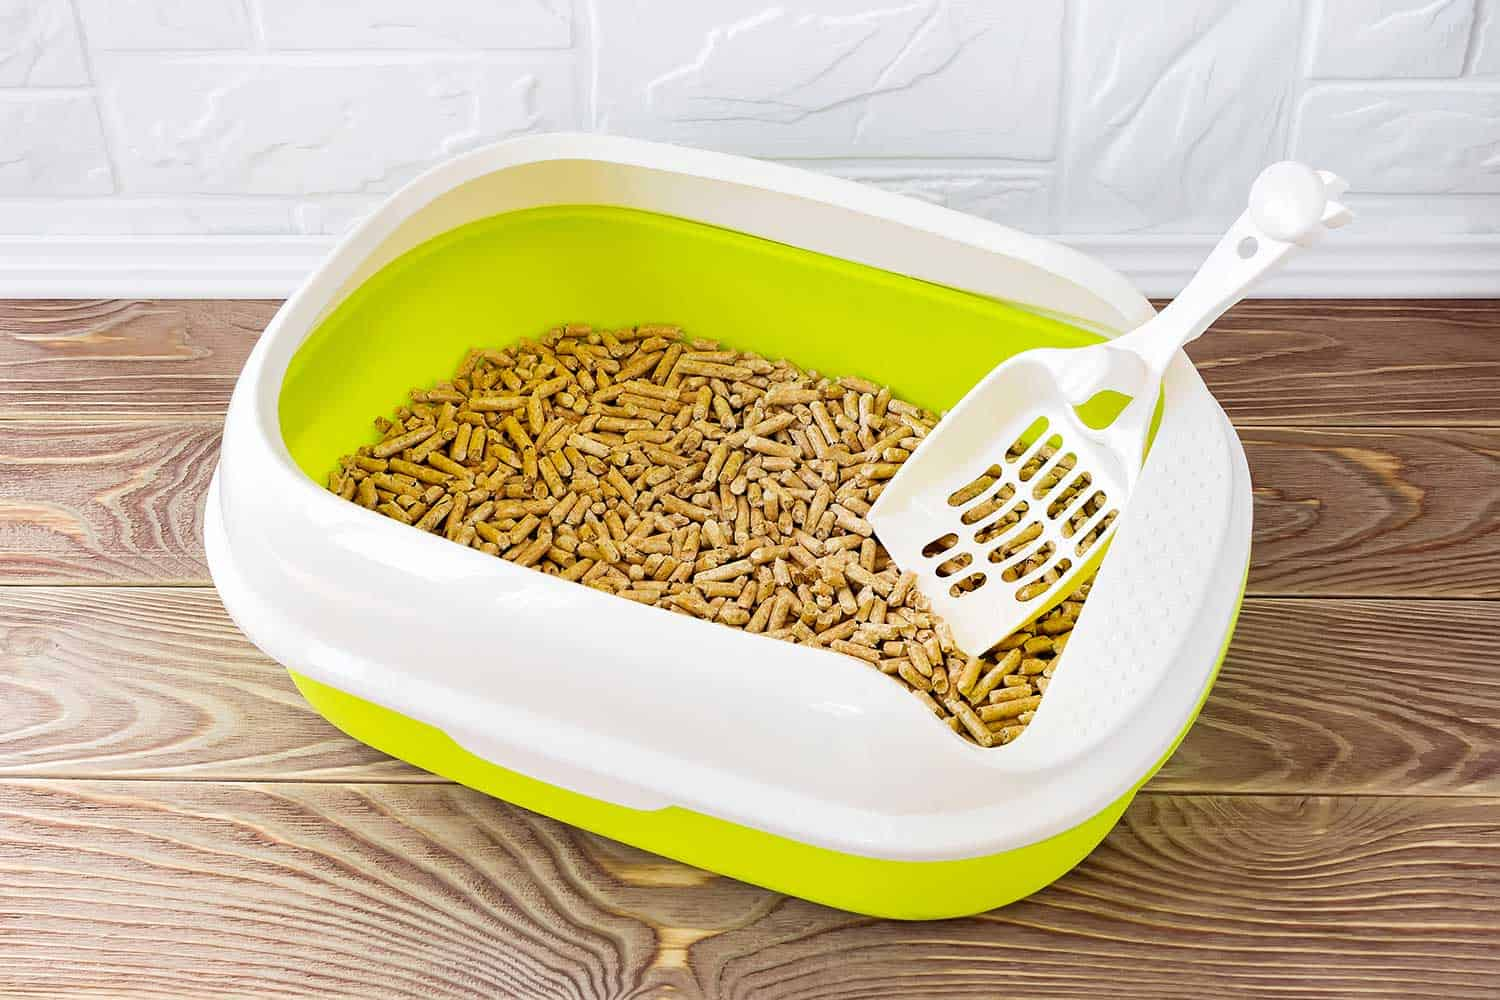 High sided cat litter tray with wooden pellets and scoop on a brown wooden floor